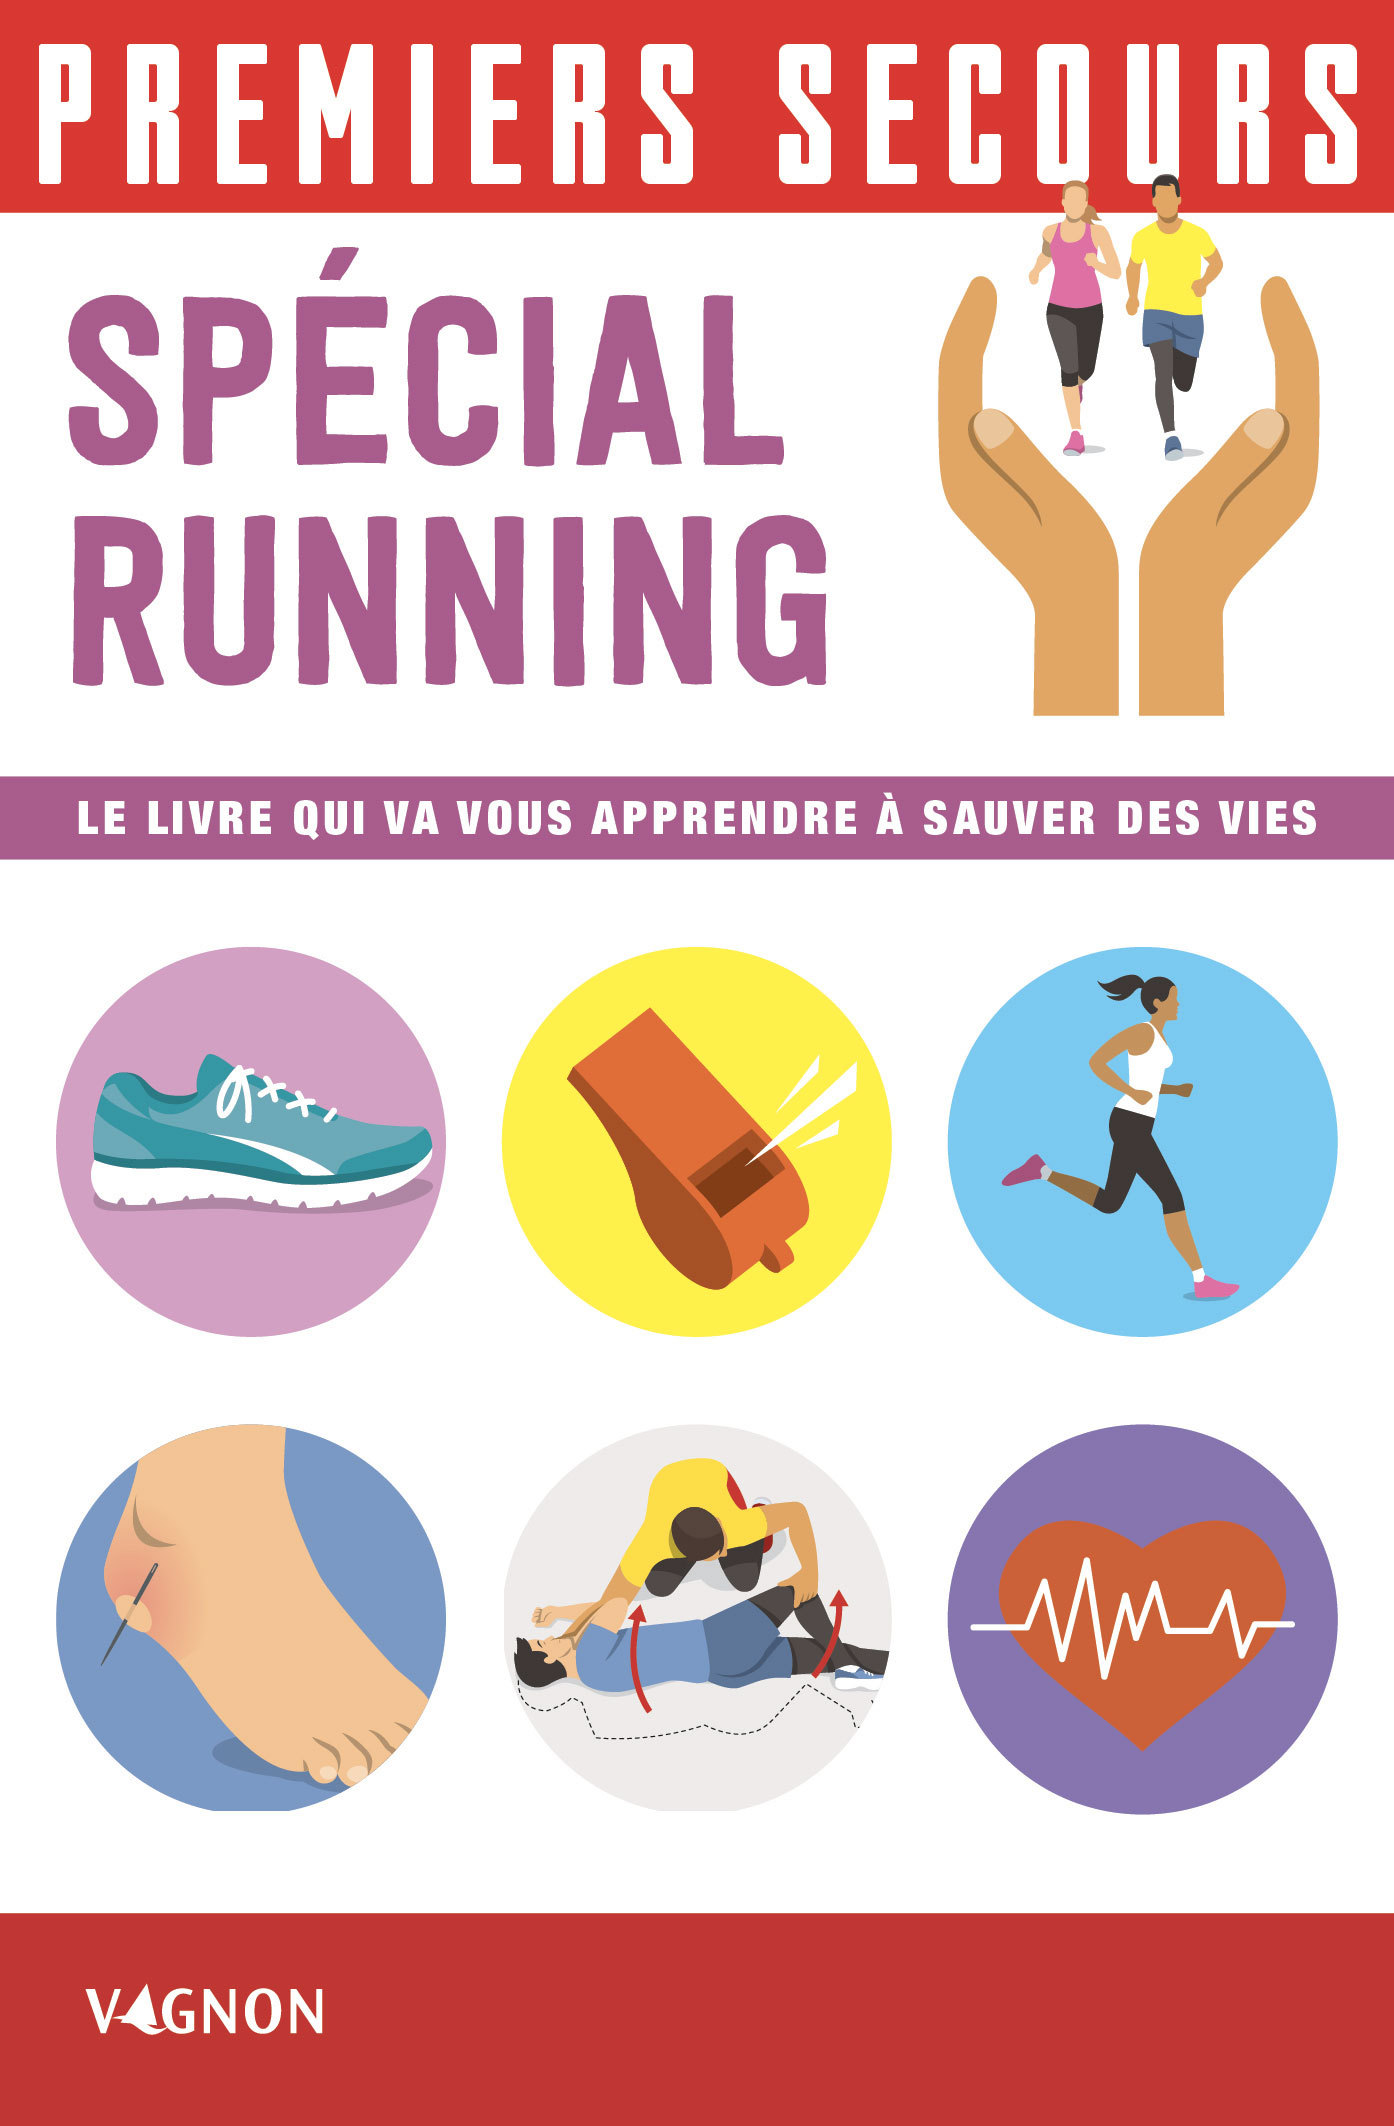 PREMIERS SECOURS SPECIAL RUNNING